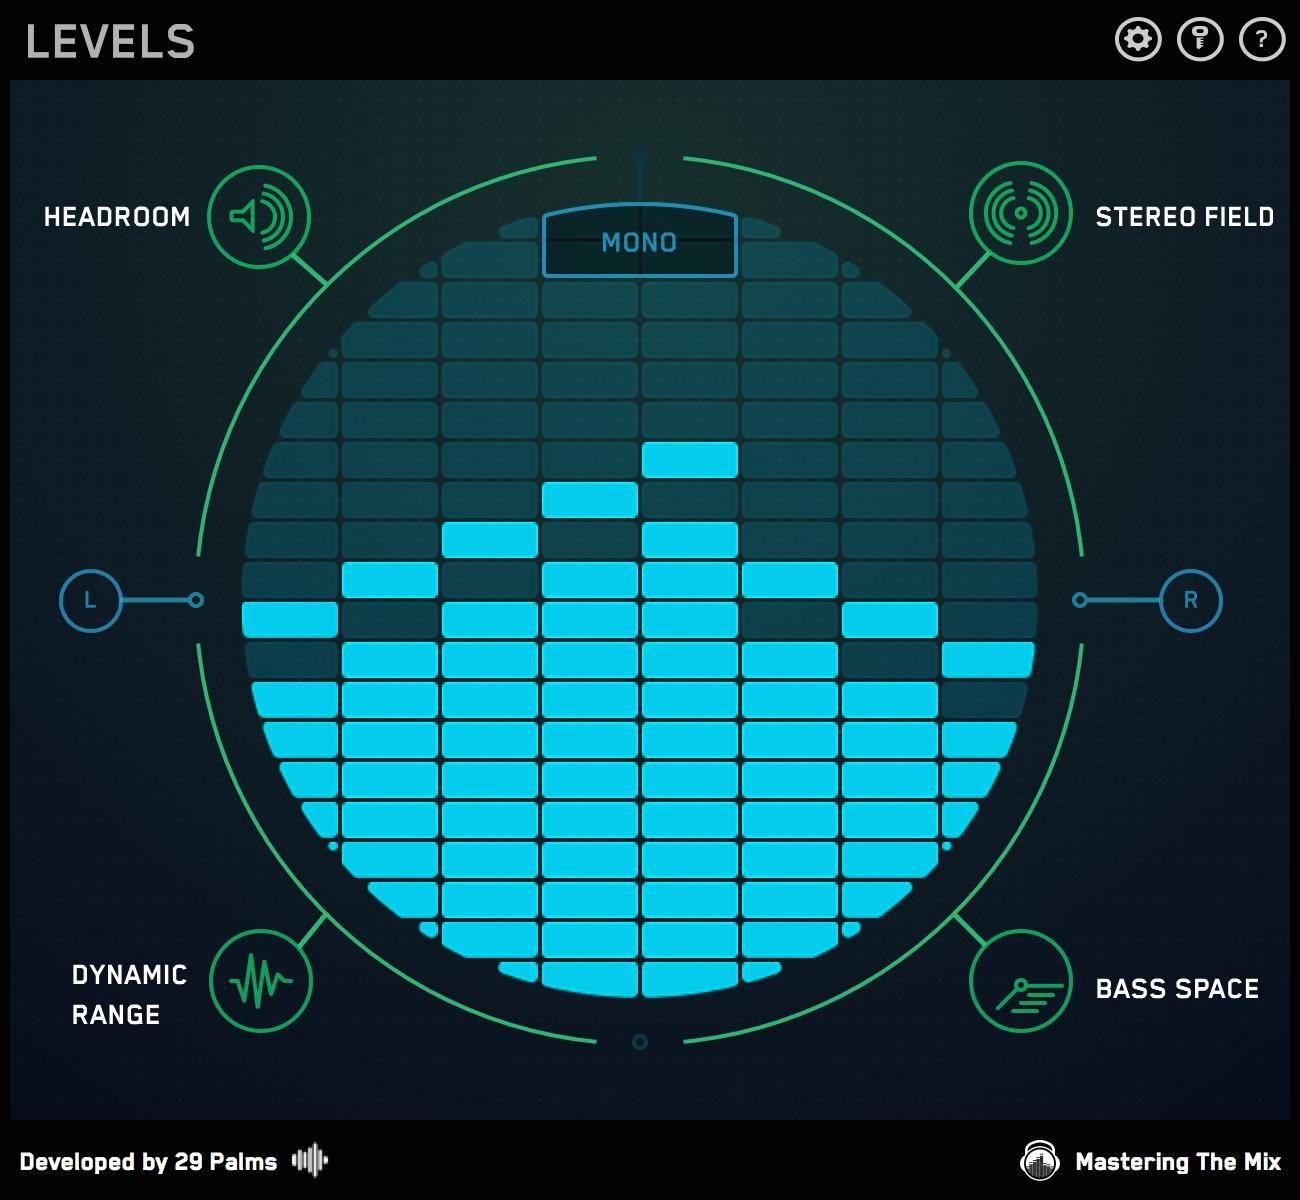 levels-mastering-the-mix (1)